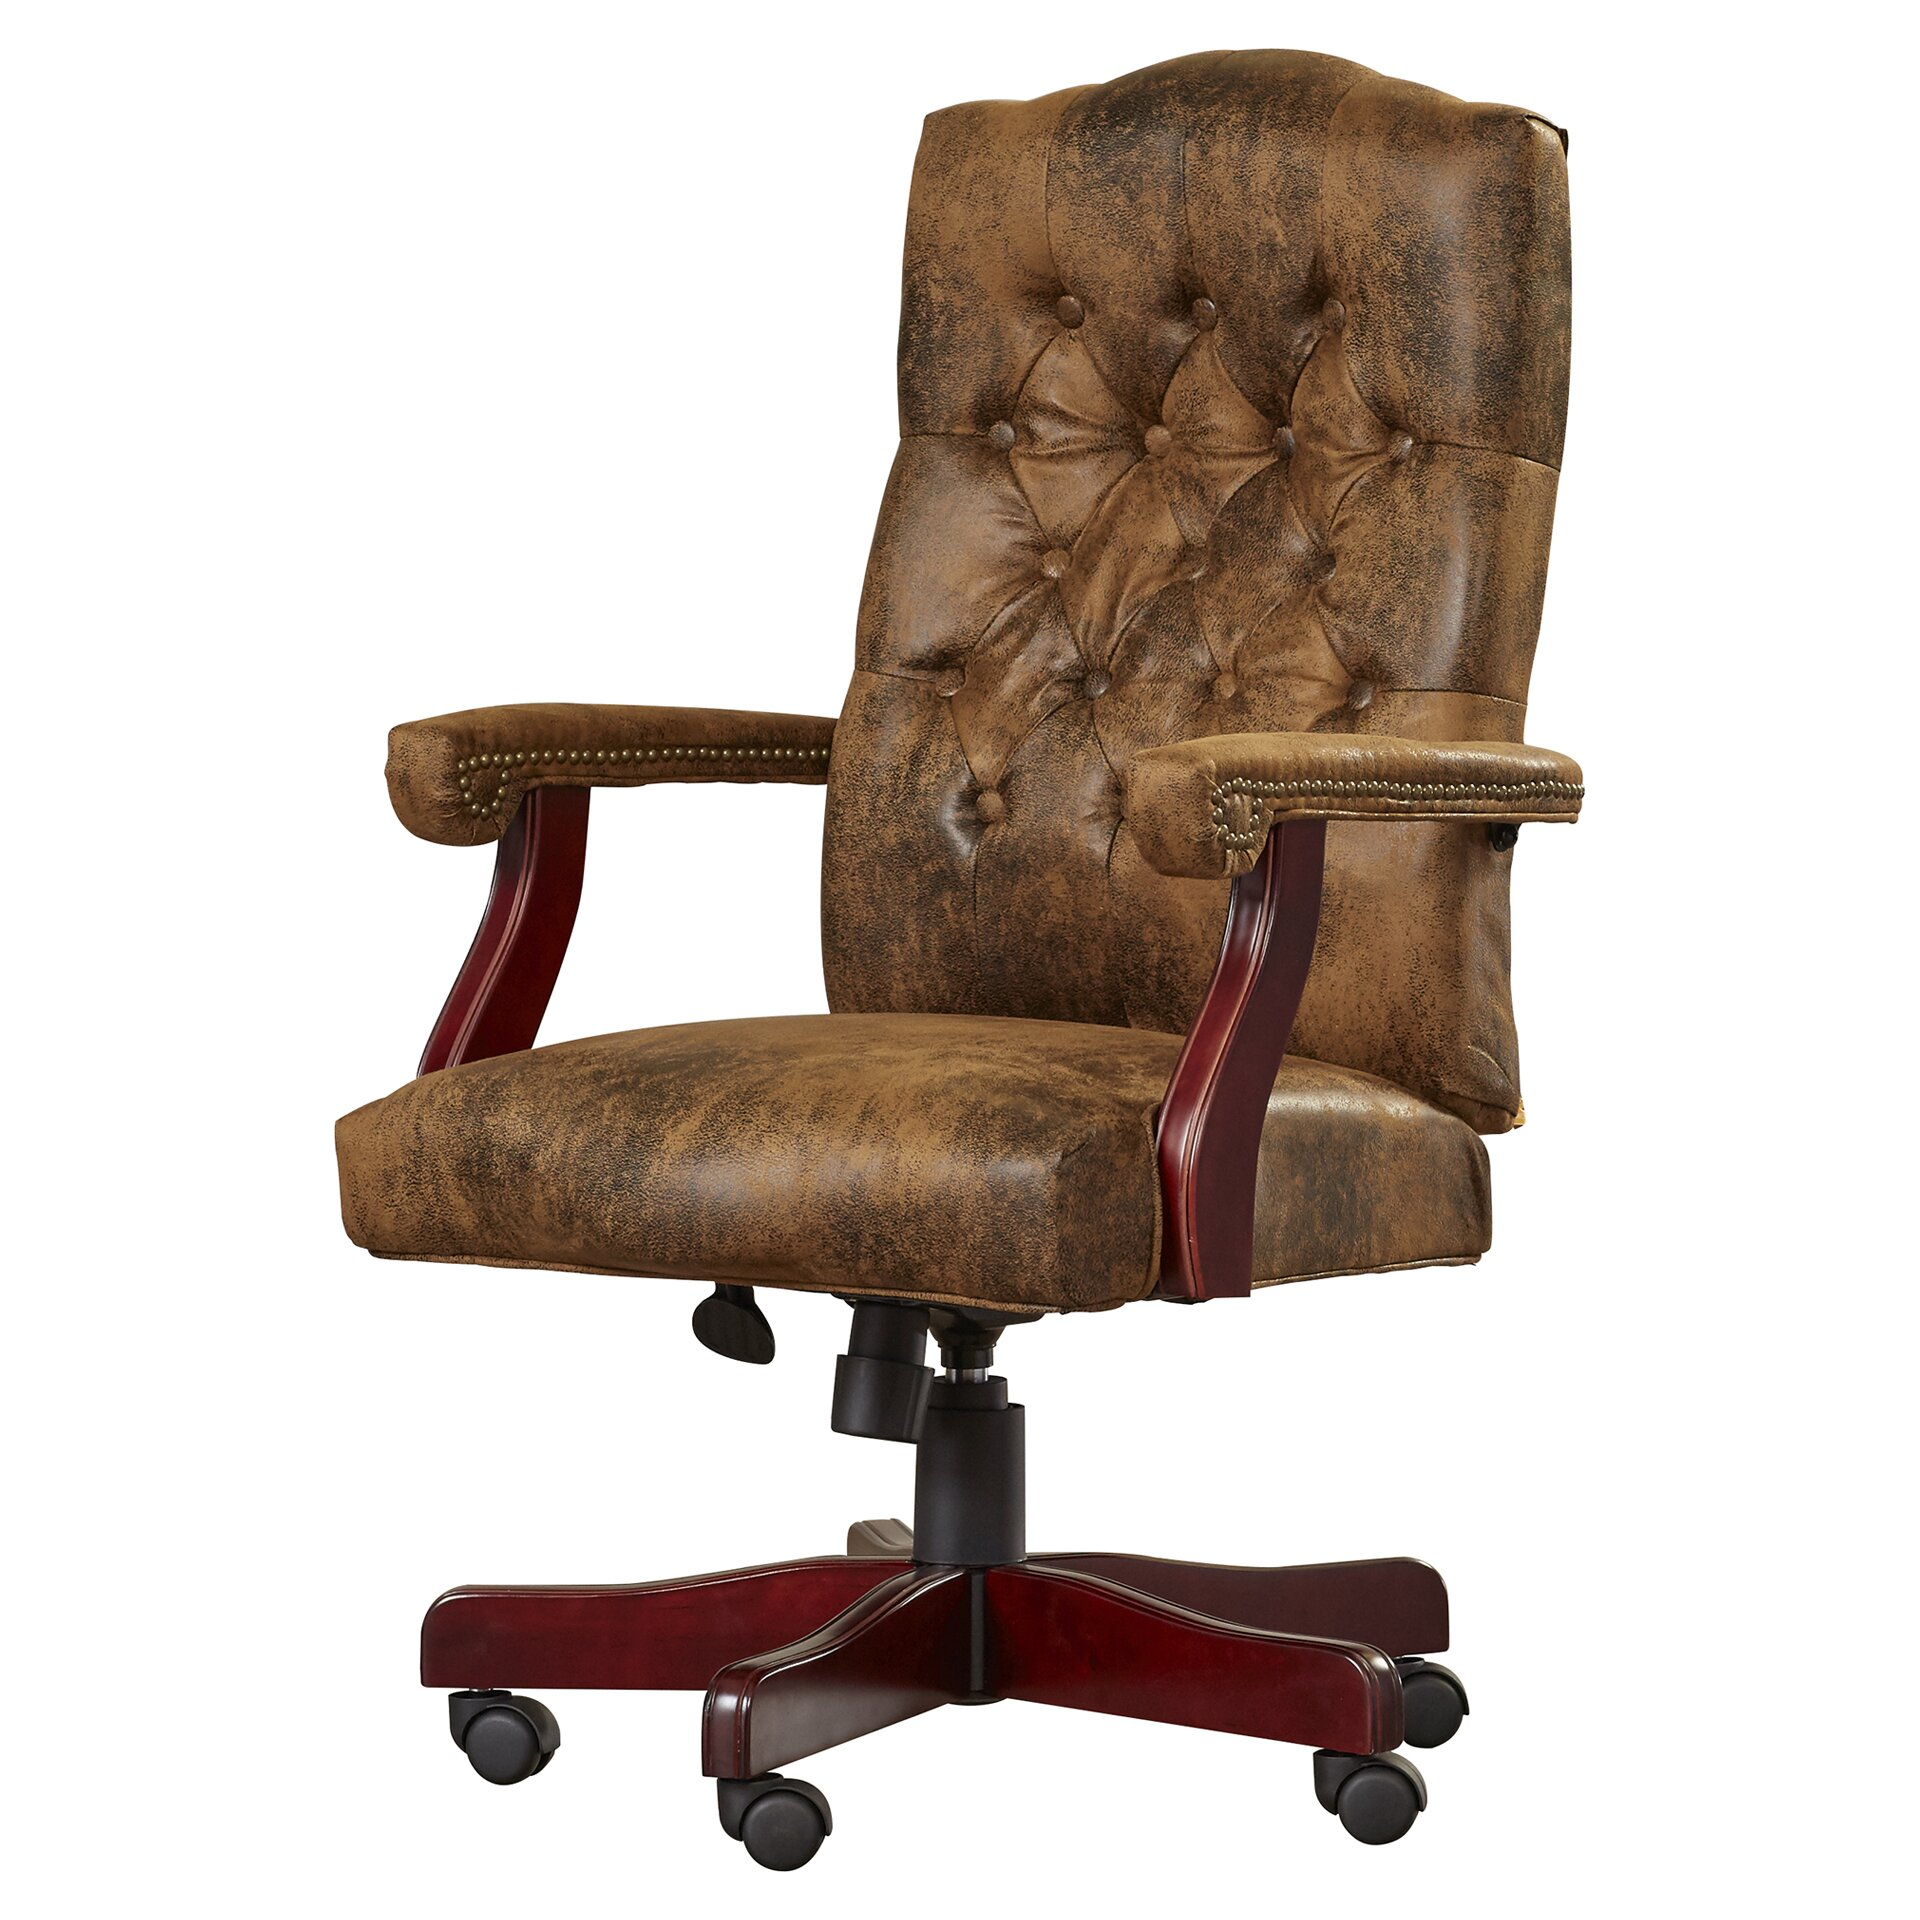 Loon peak hebbville high back executive office chair with Peak office furniture